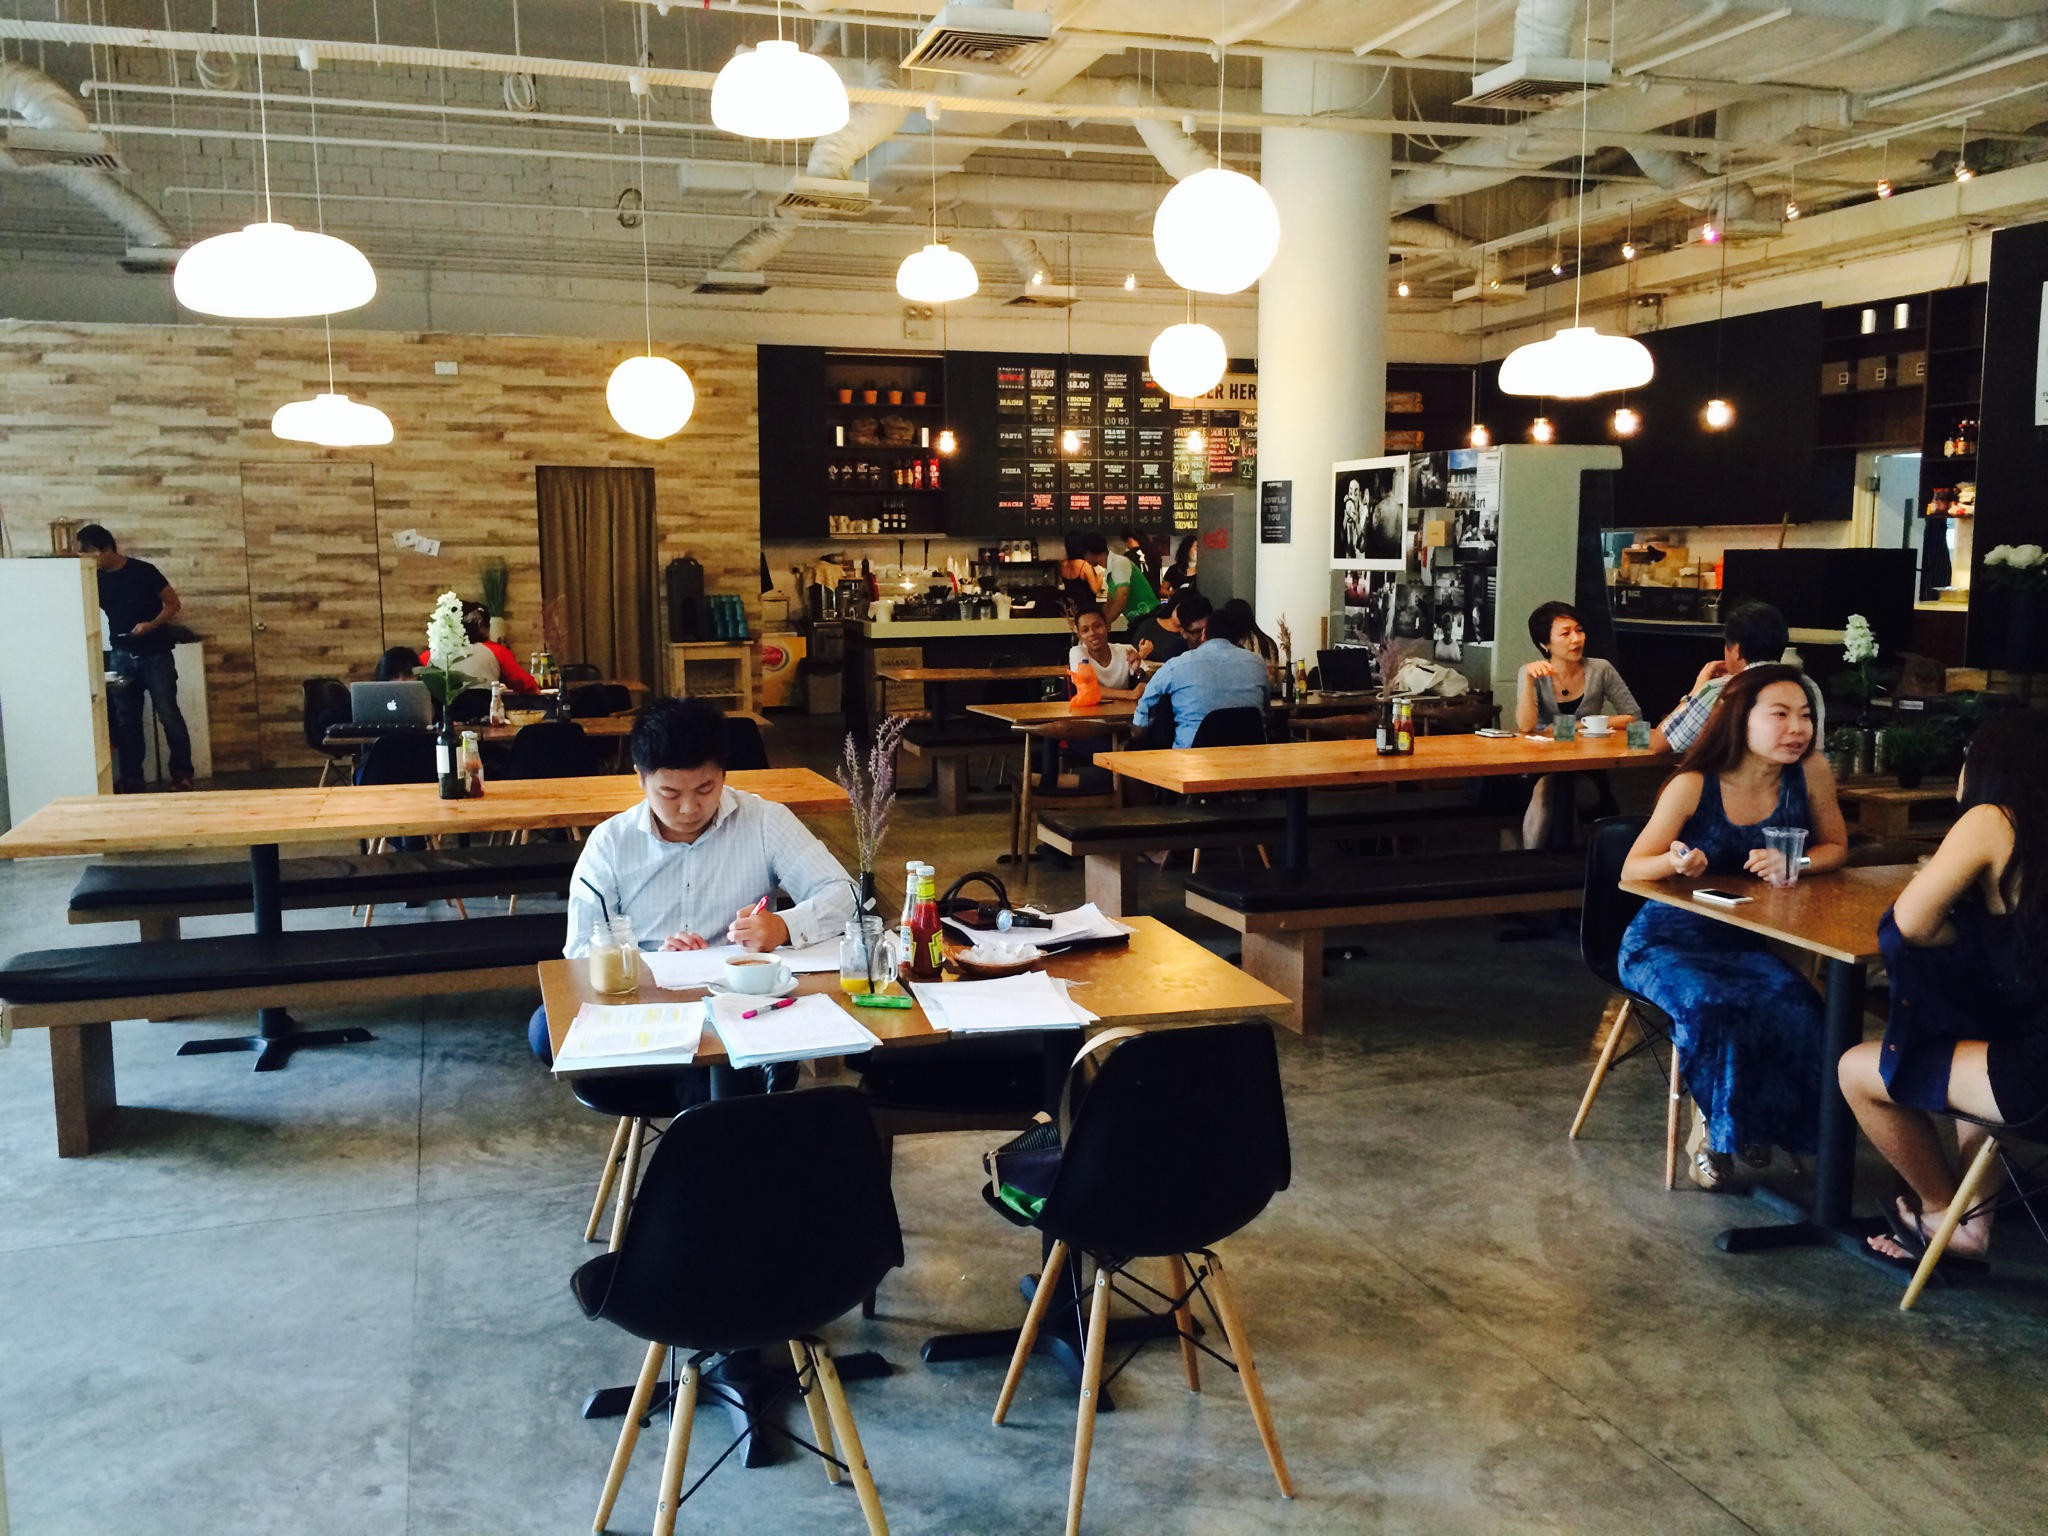 Best Cafes To Work At In Singapore Part 1